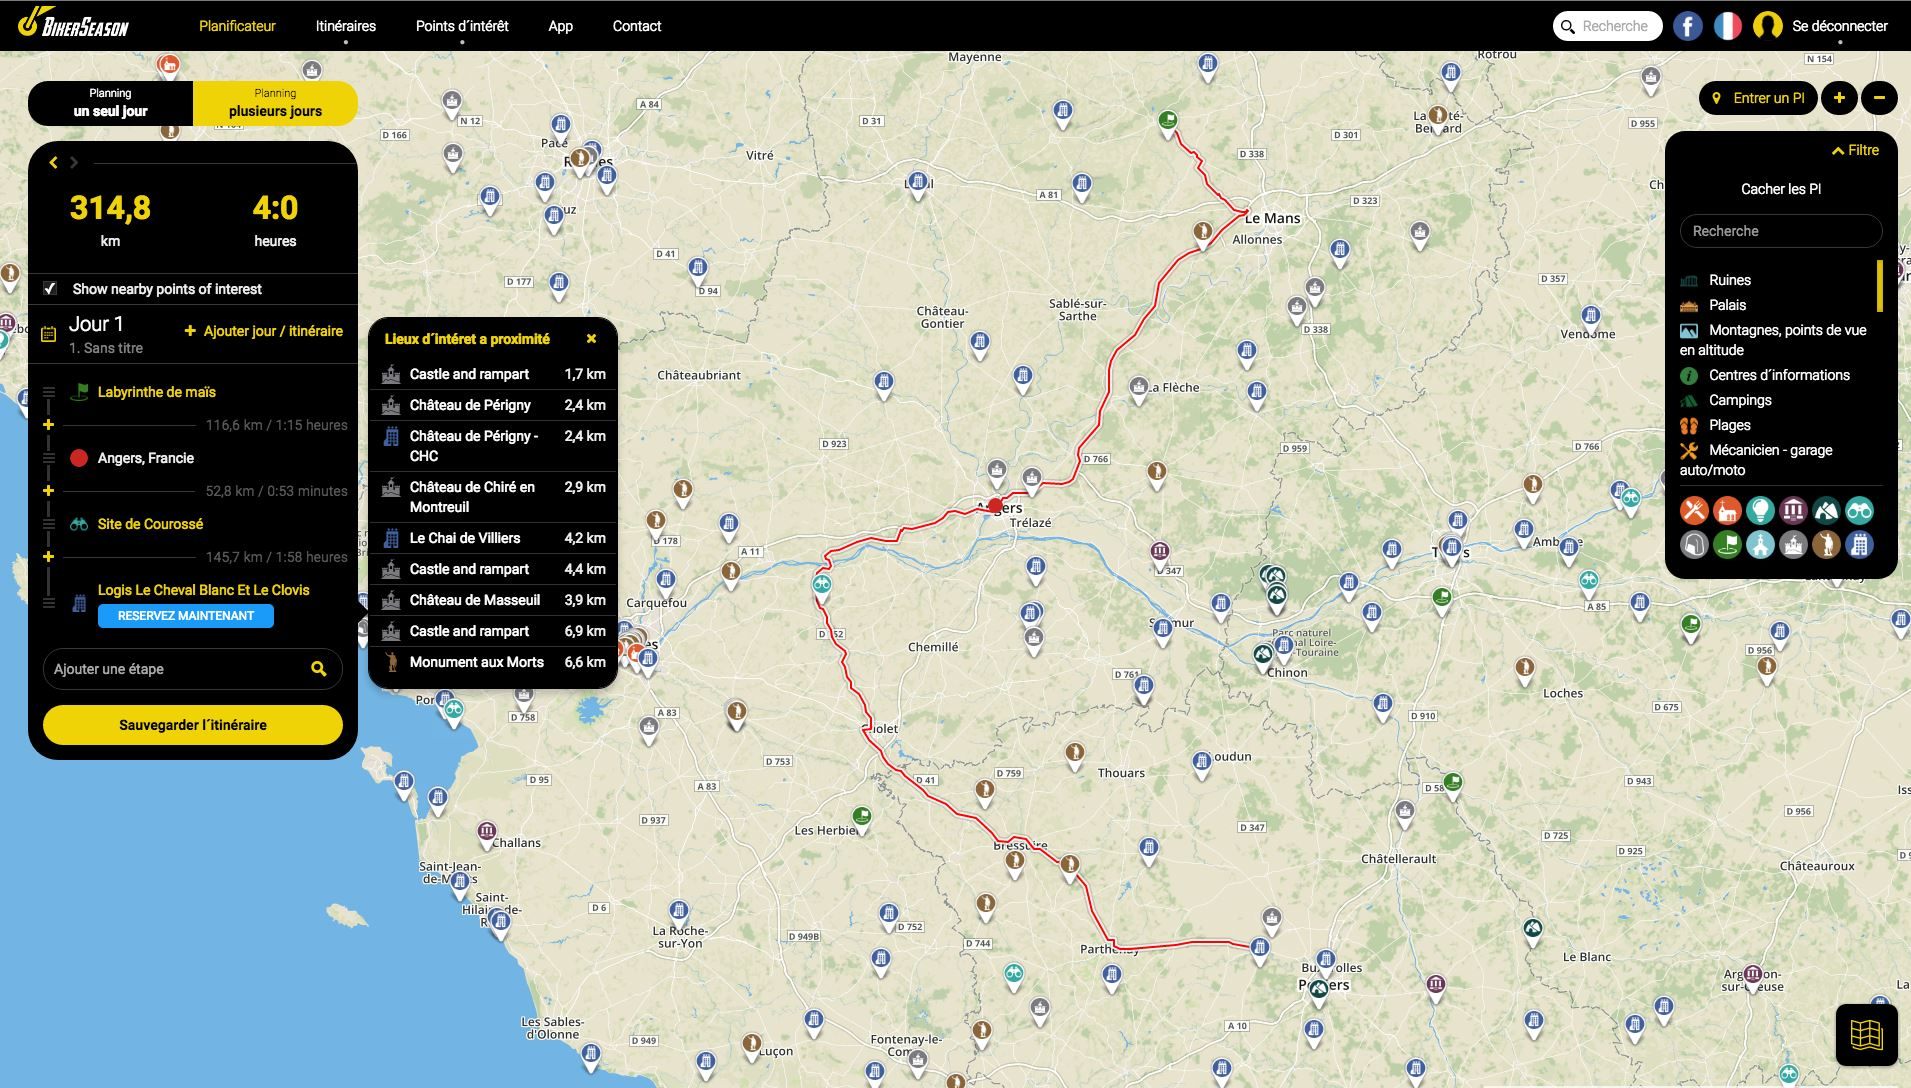 Planificateur d´itinéraire interactif sur l'application BikerSeason